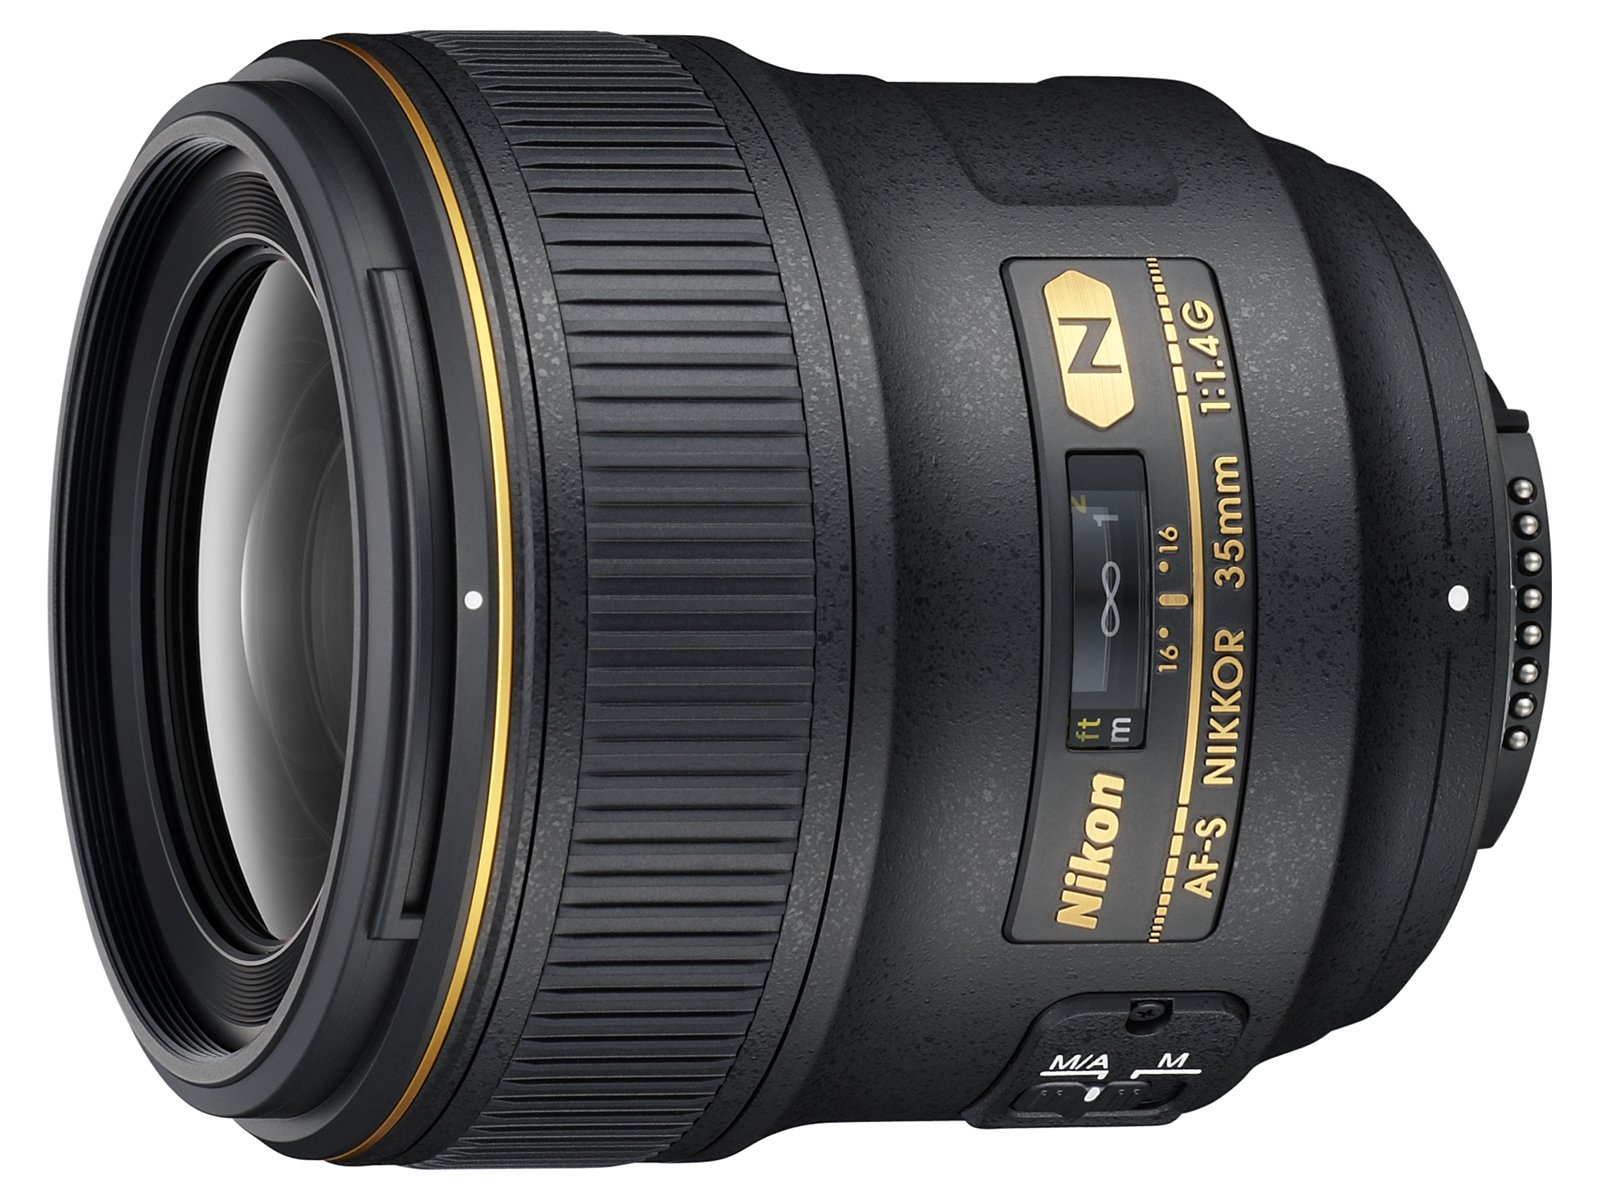 Nikon AF FX NIKKOR 35mm f/1.4G Fixed Focal Length Lens with Auto Focus for Nikon DSLR Cameras by Nikon